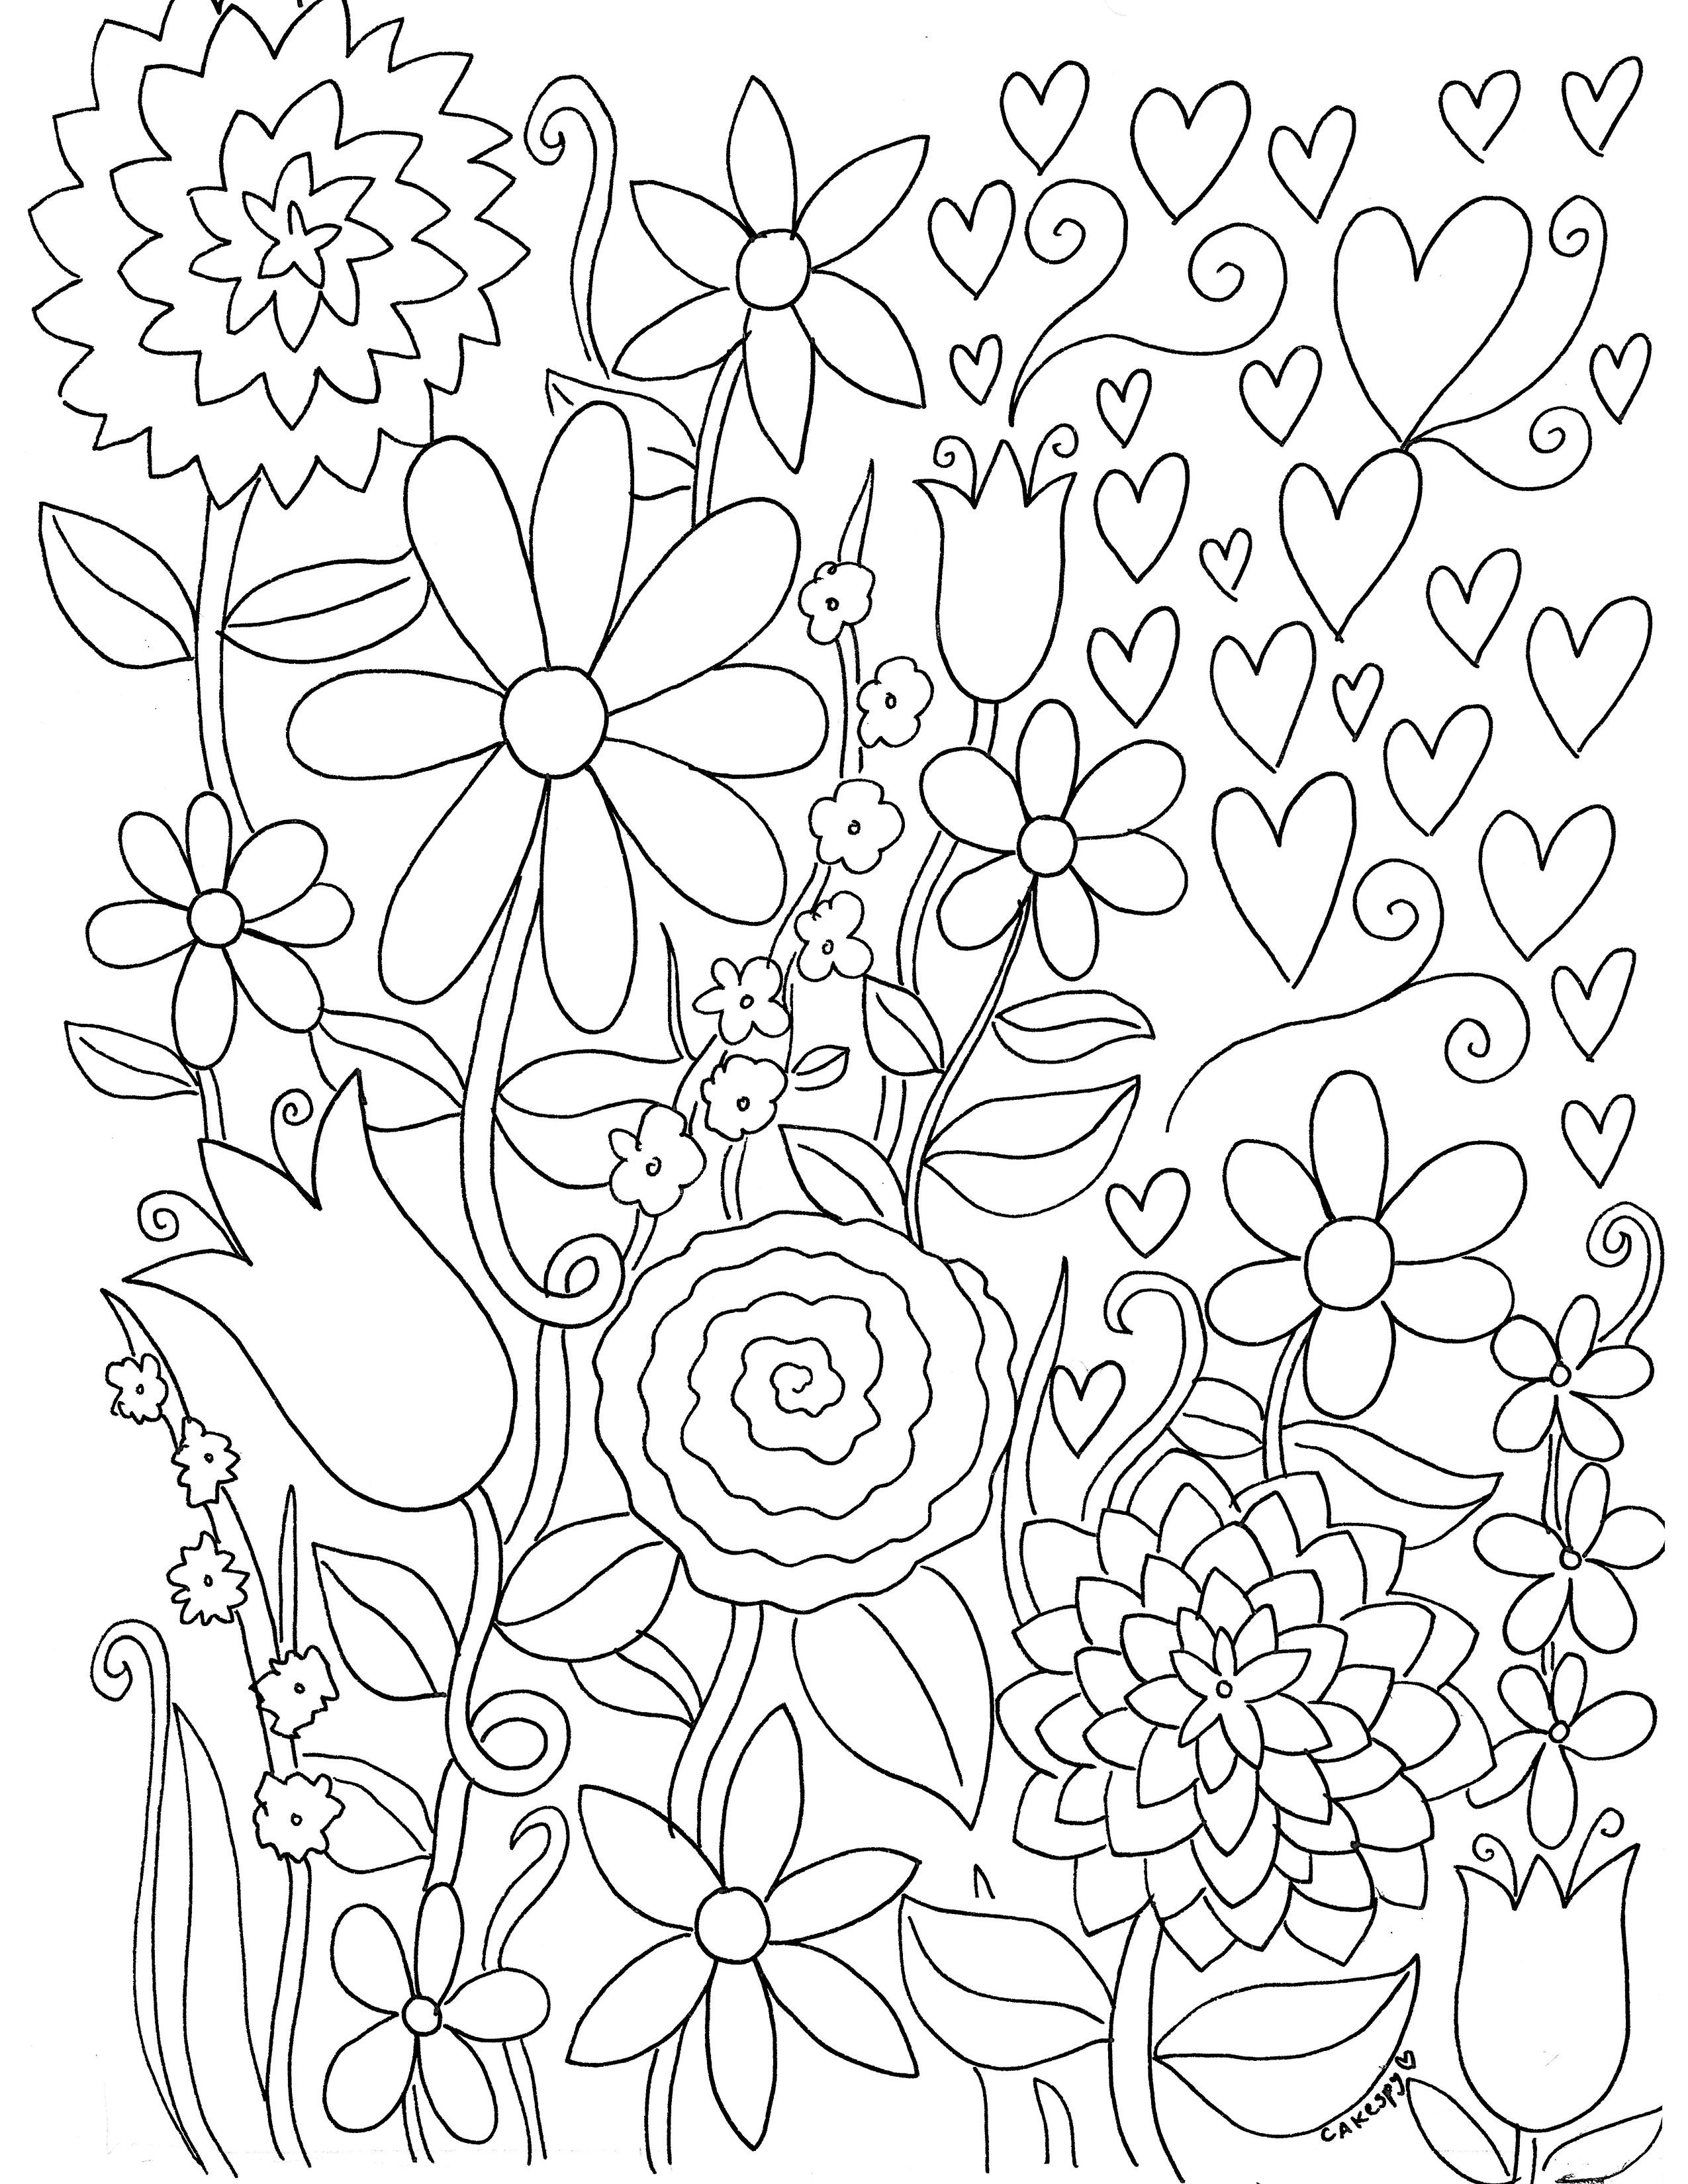 Free Paintnumbers For Adults Downloadable | *printable Art - Free Printable Coloring Book Download